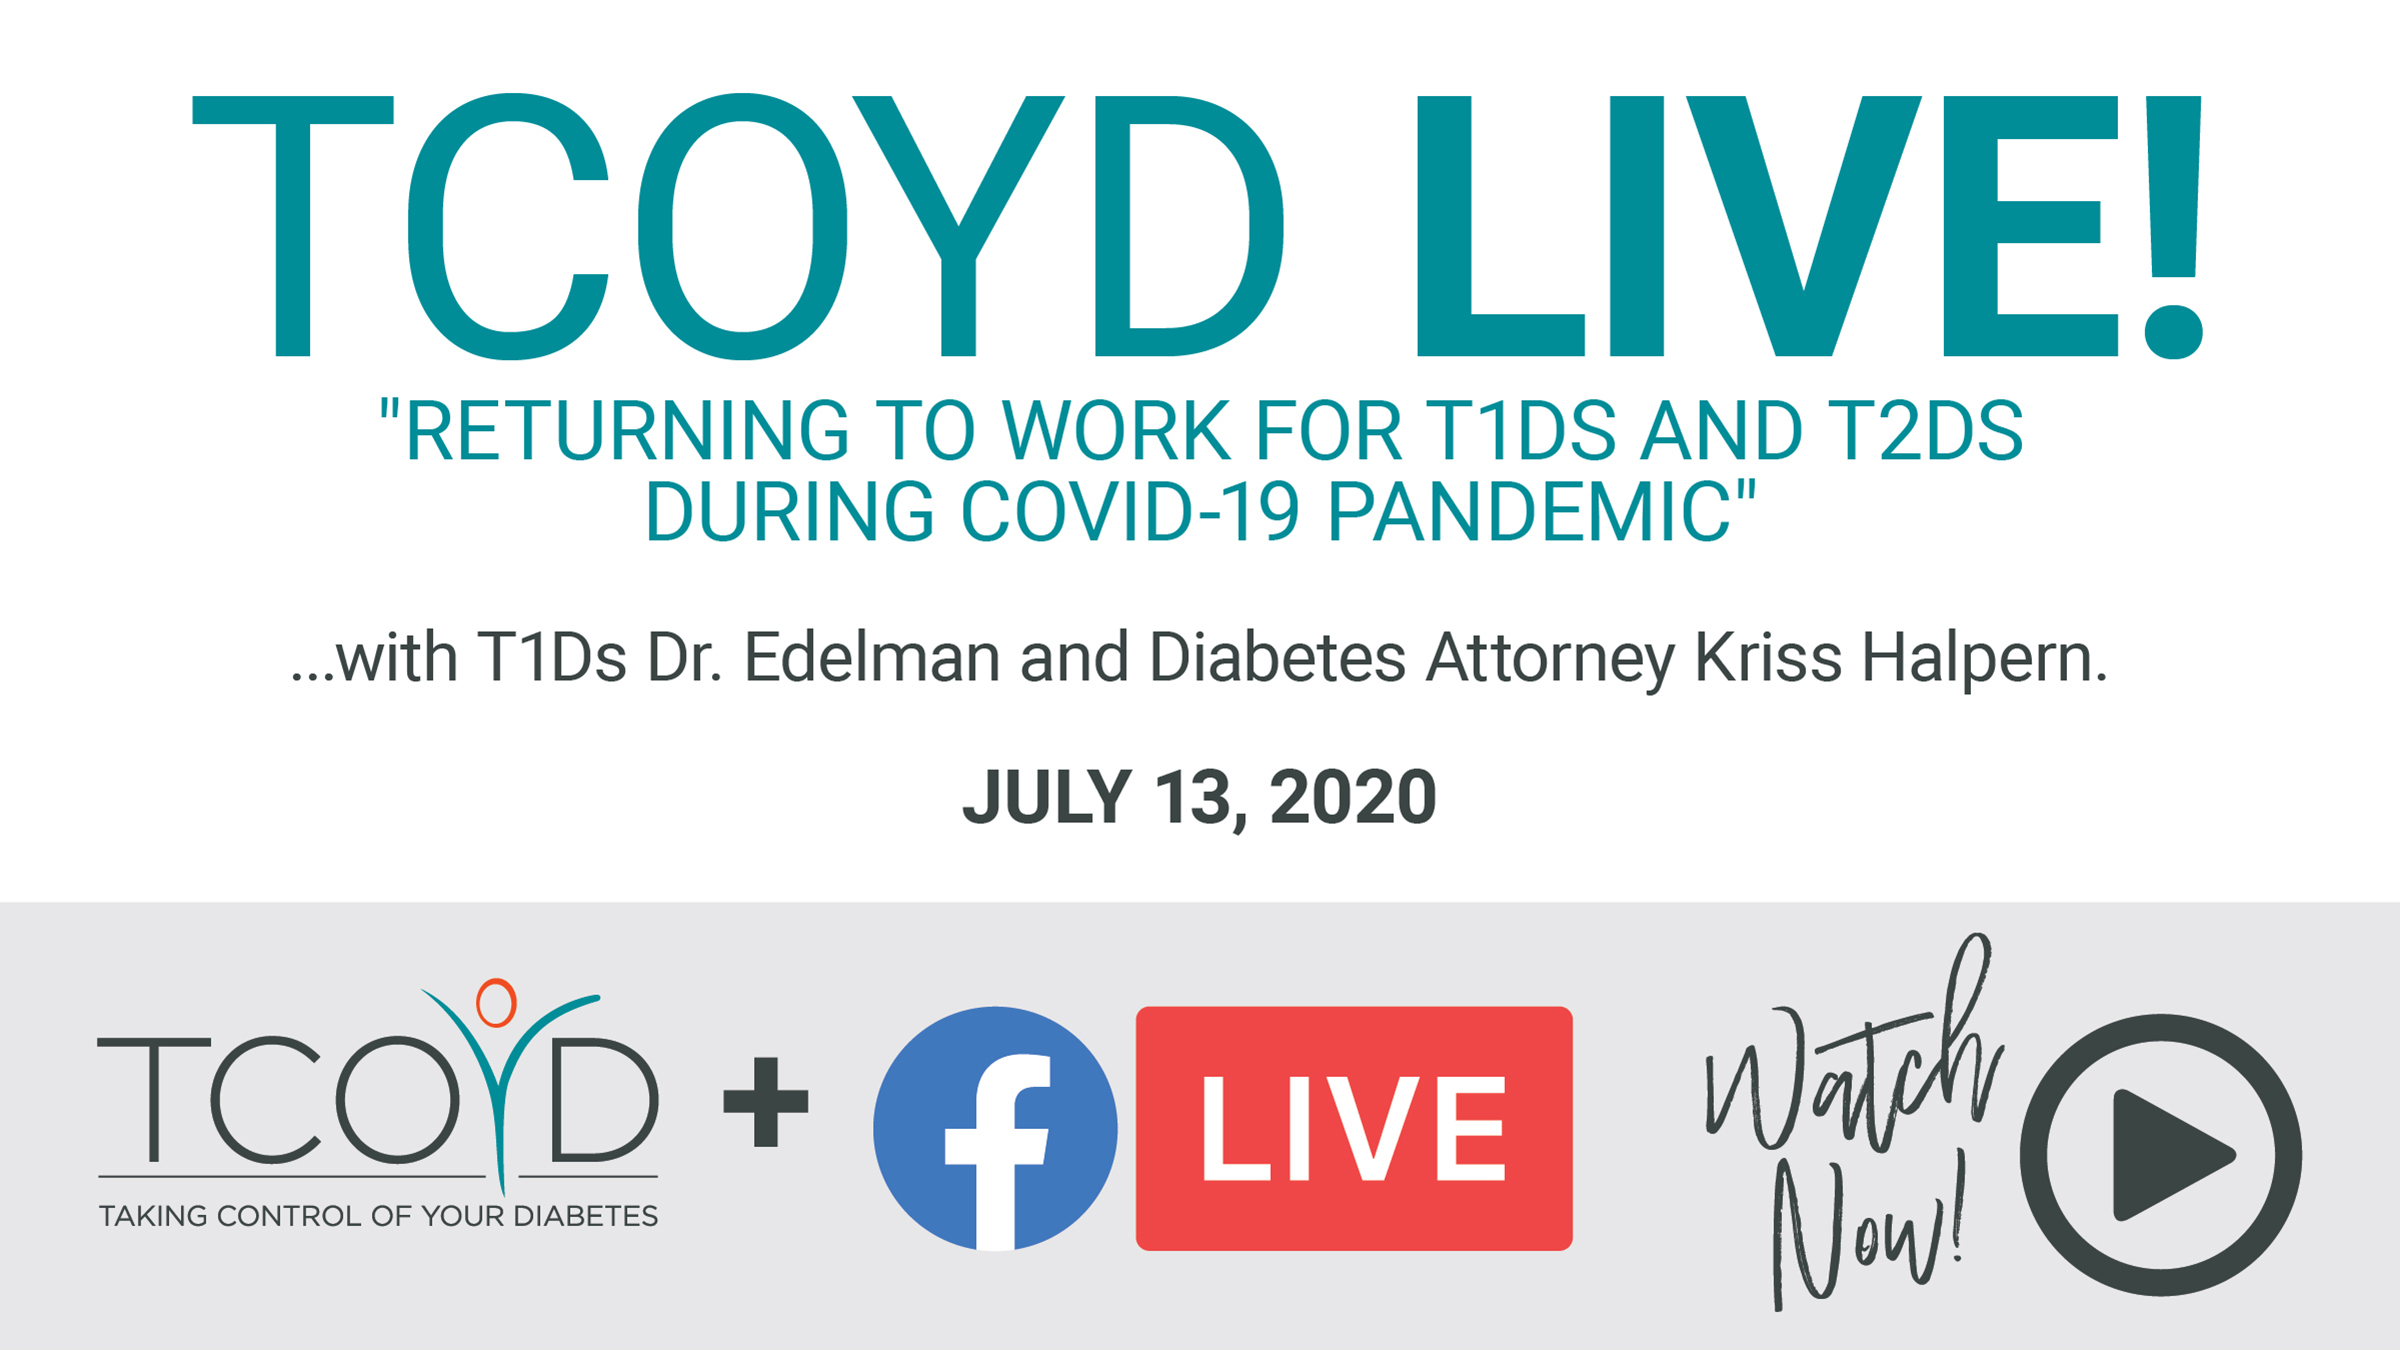 Facebook Live: People with Diabetes Returning to Work During COVID-19